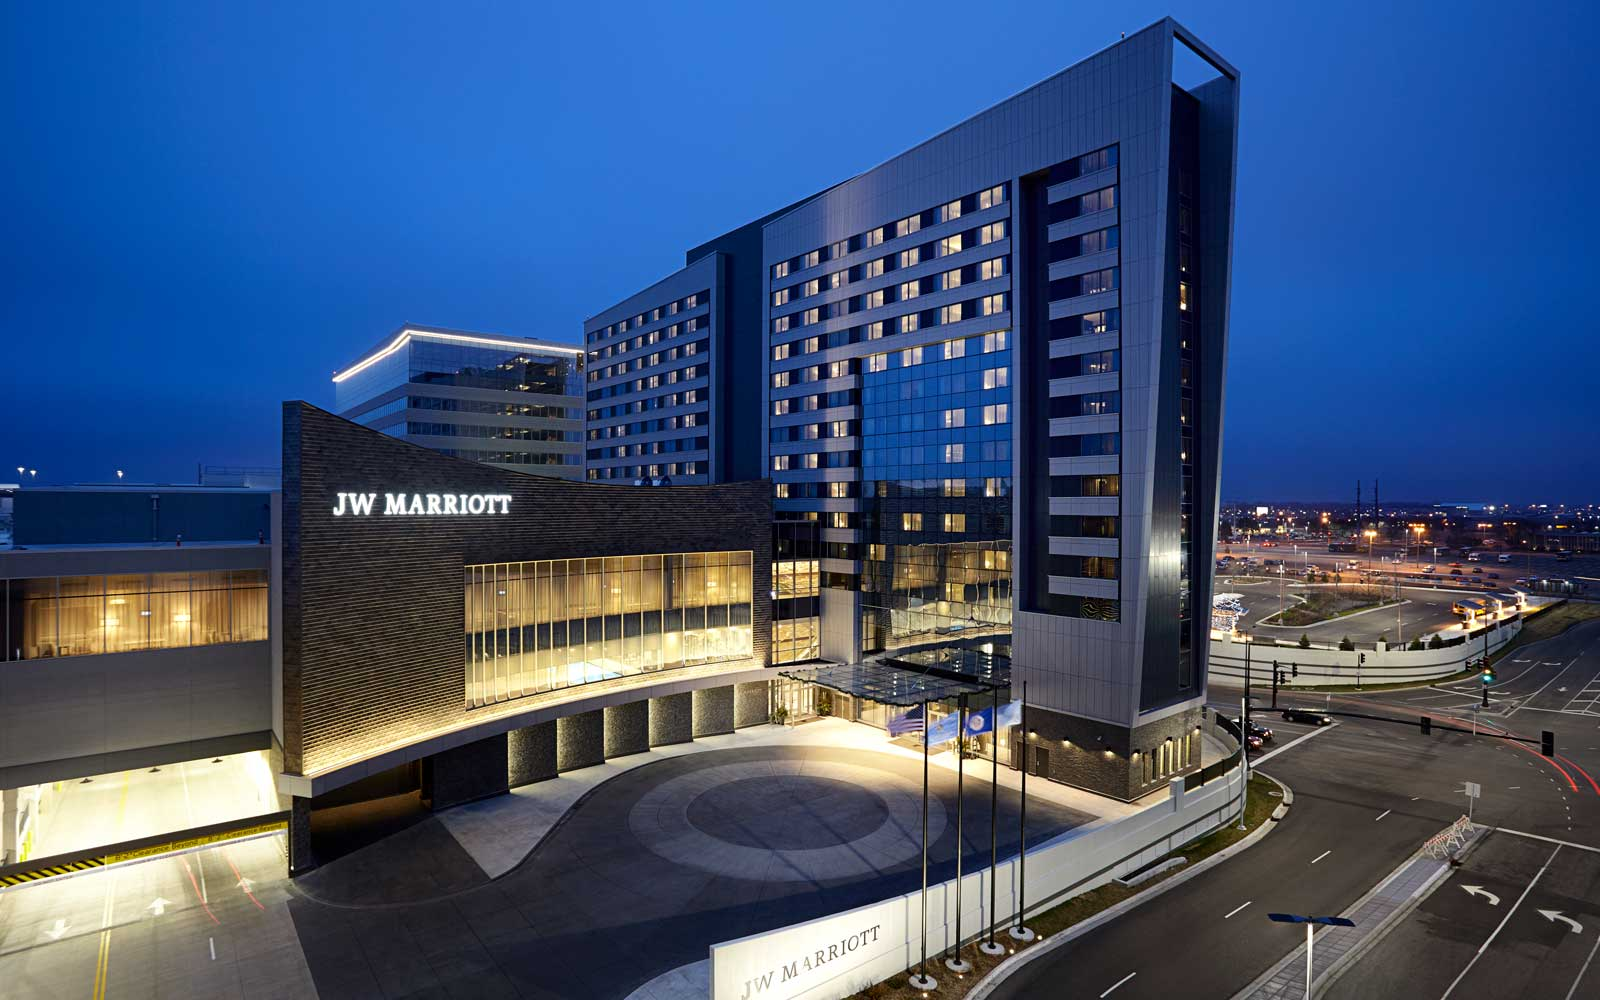 JW Marriott Marquis at the Mall of America